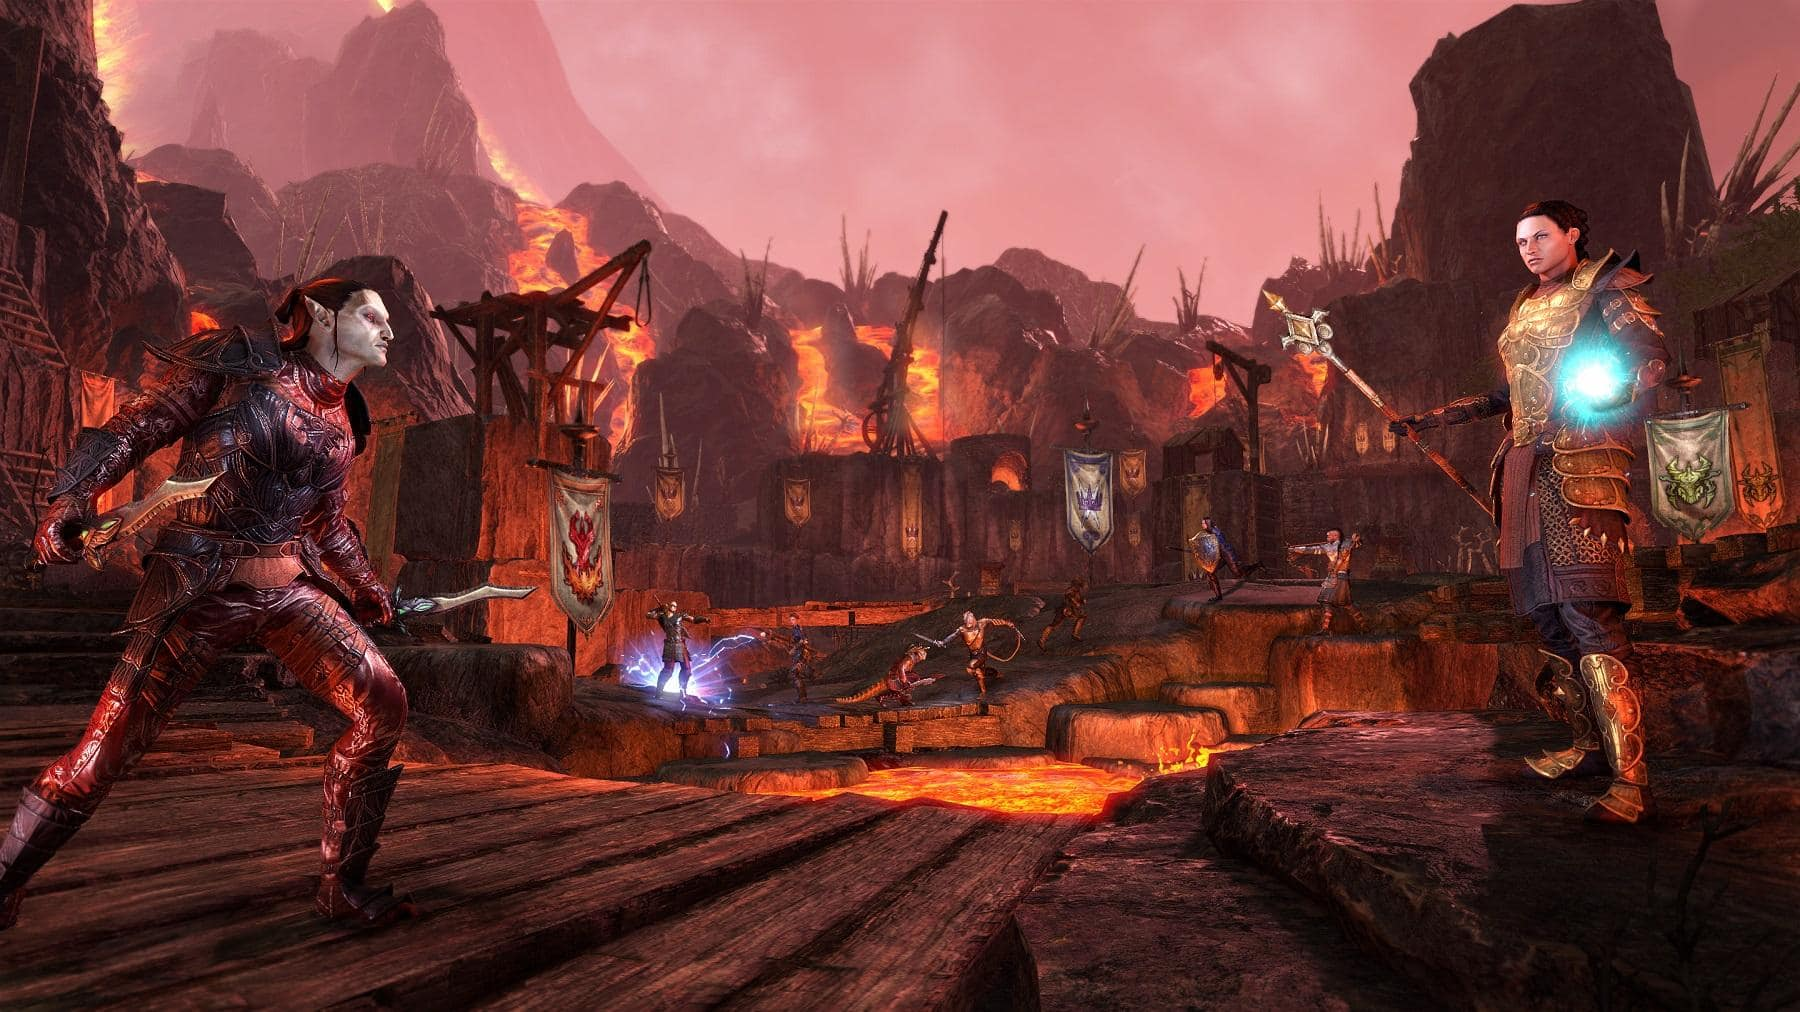 Four Different Editions Of Morrowind Will Be Available At Launch: The  Standard Edition, The Upgrade Edition, The Digital Collector's Edition And  A Physical